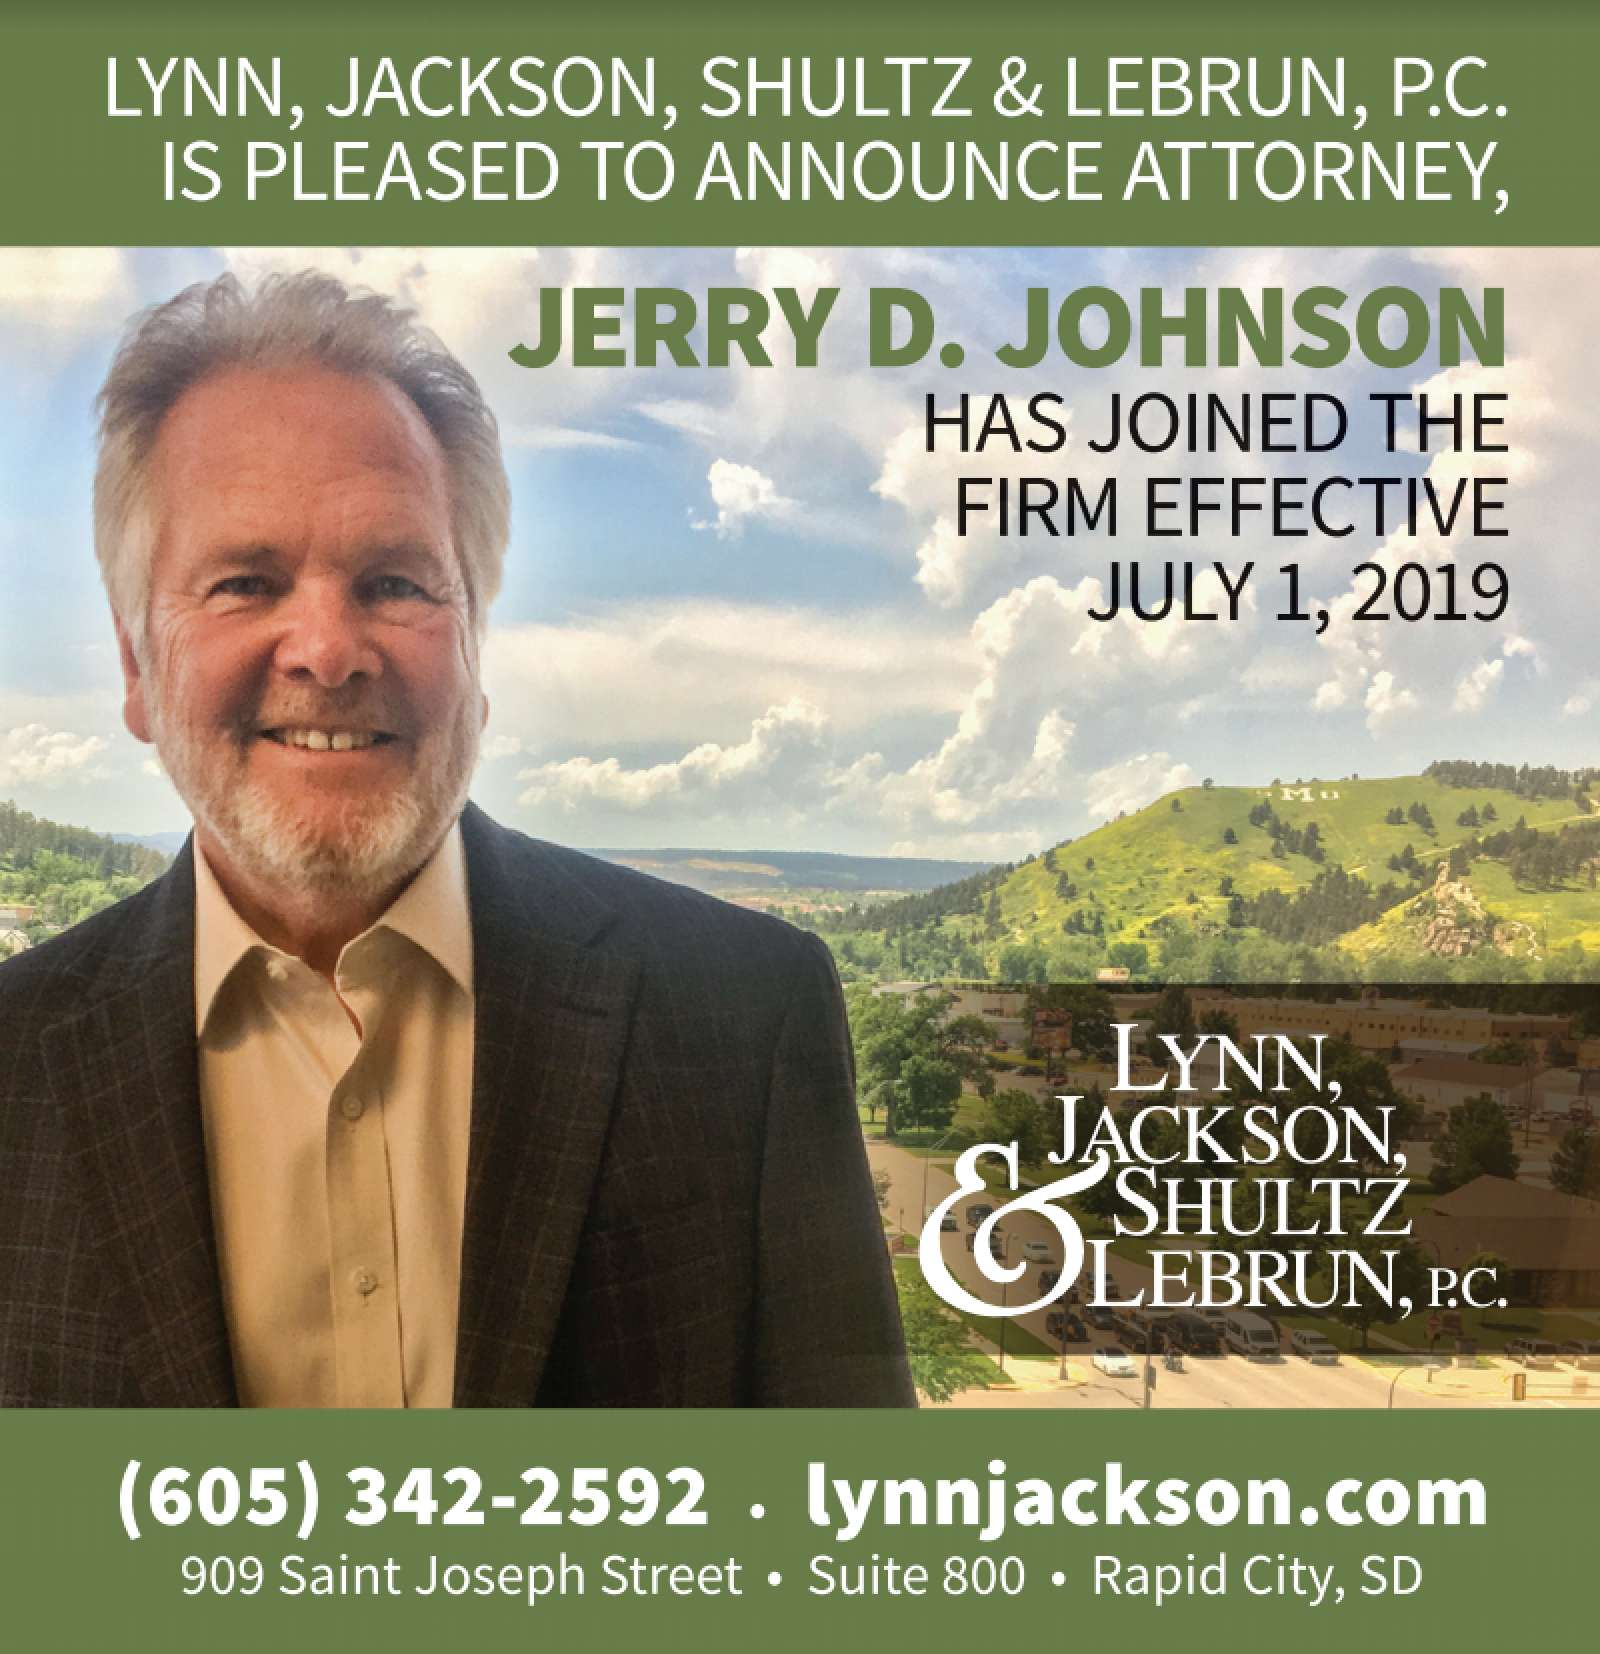 Jerry D. Johnson to join Lynn Jackson